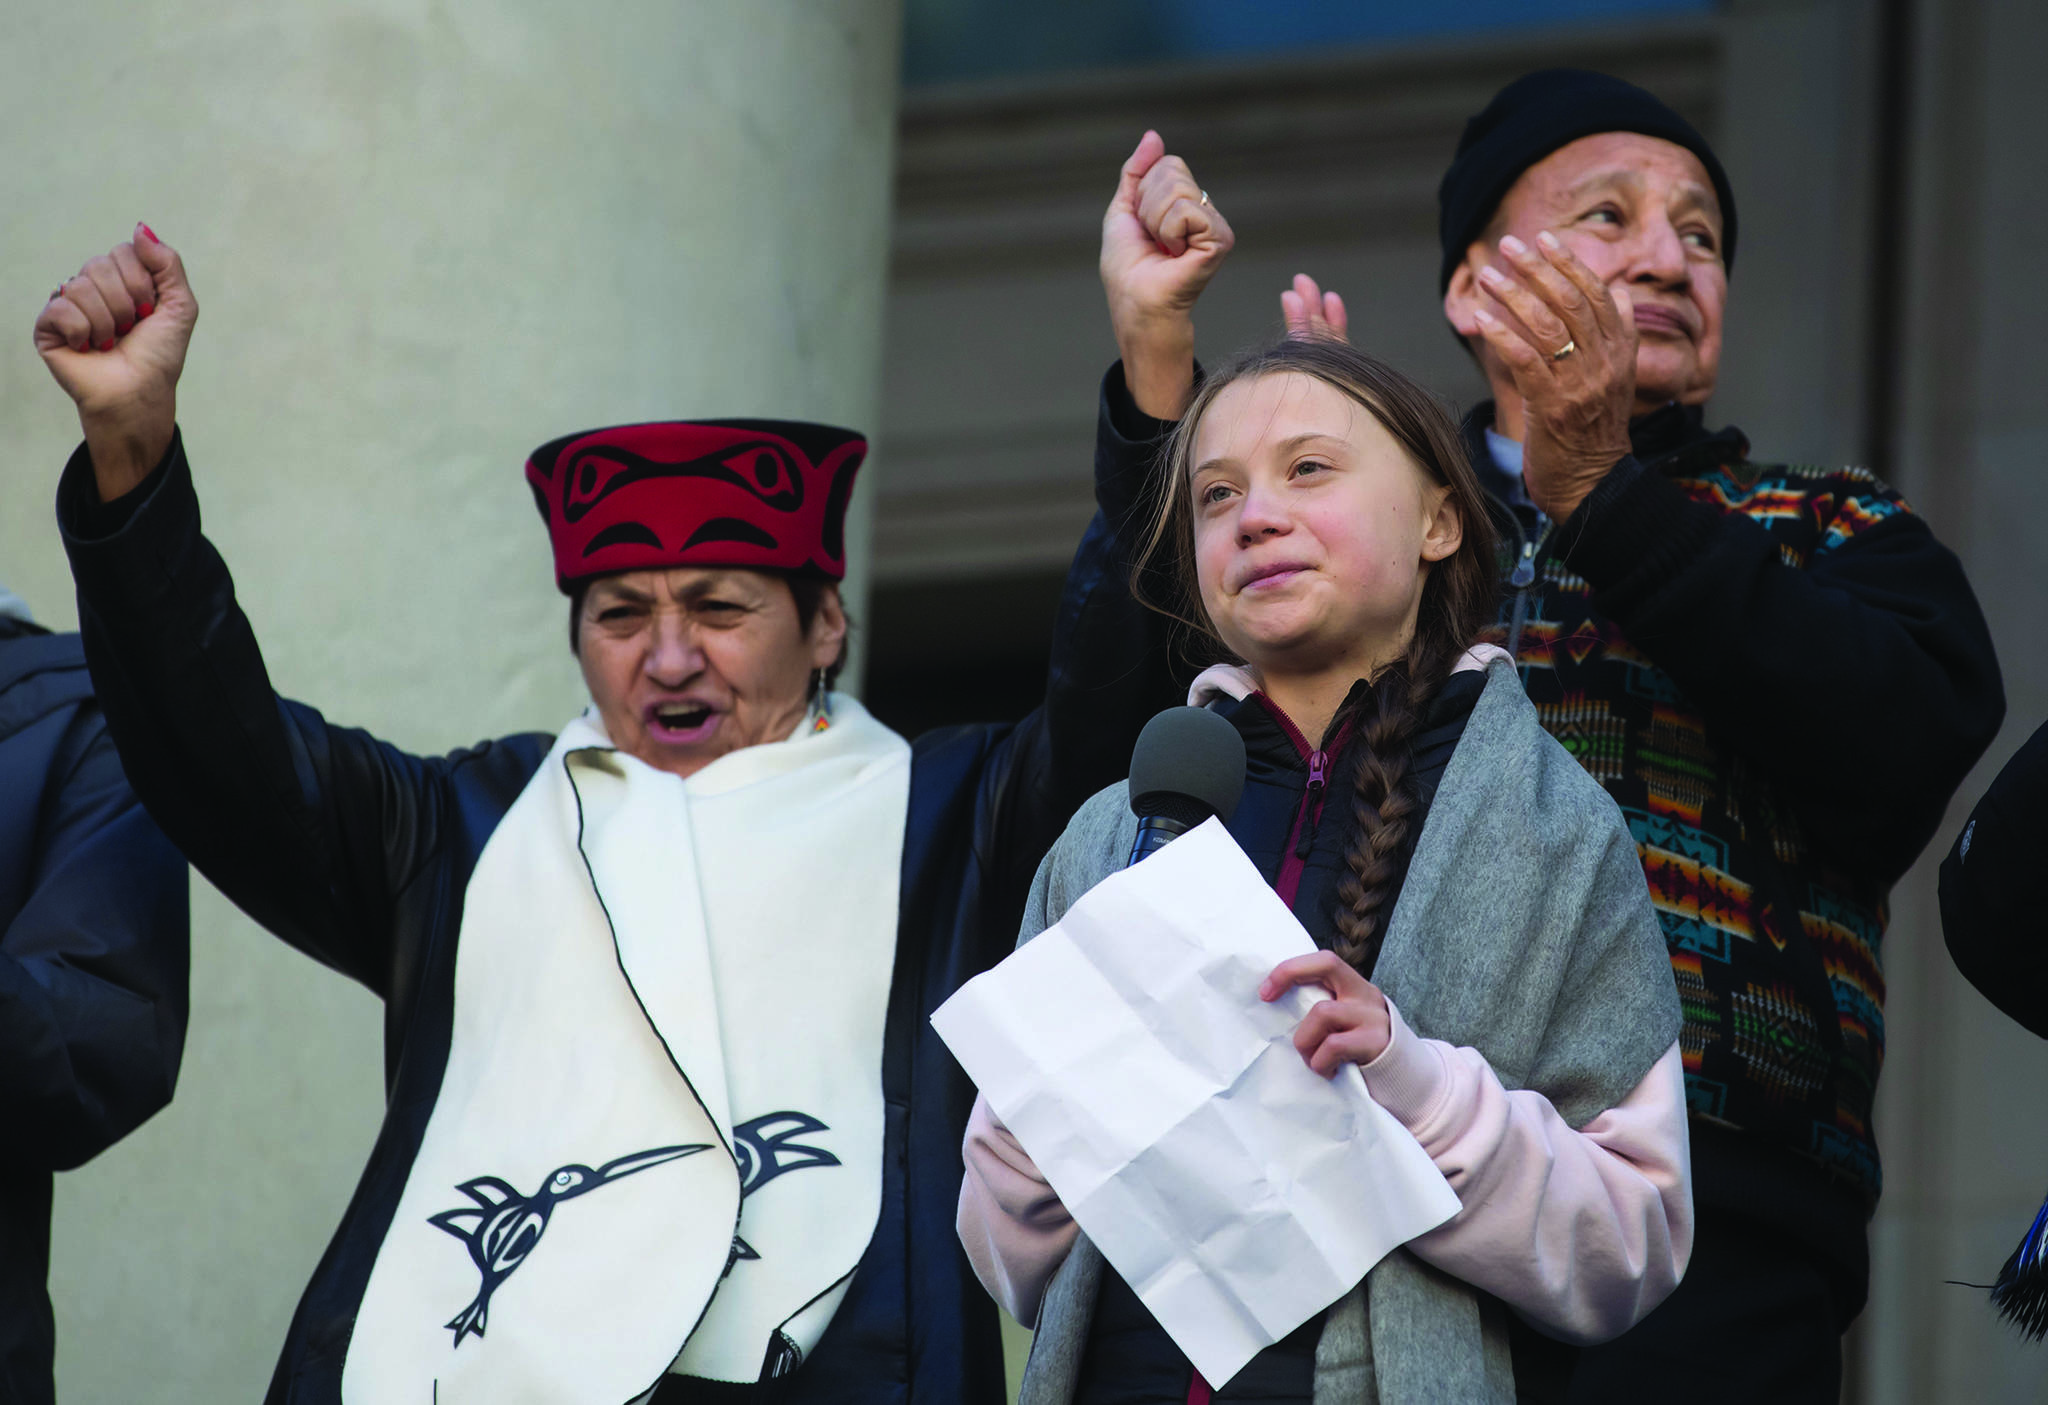 Swedish environmental activist Greta Thunberg, front right, is applauded by Grand Chief Stewart Phillip and cheered by his wife Joan Phillip as she addresses a student-led climate change rally after participating in a march, in Vancouver, on Friday October 25, 2019. THE CANADIAN PRESS/Darryl Dyck